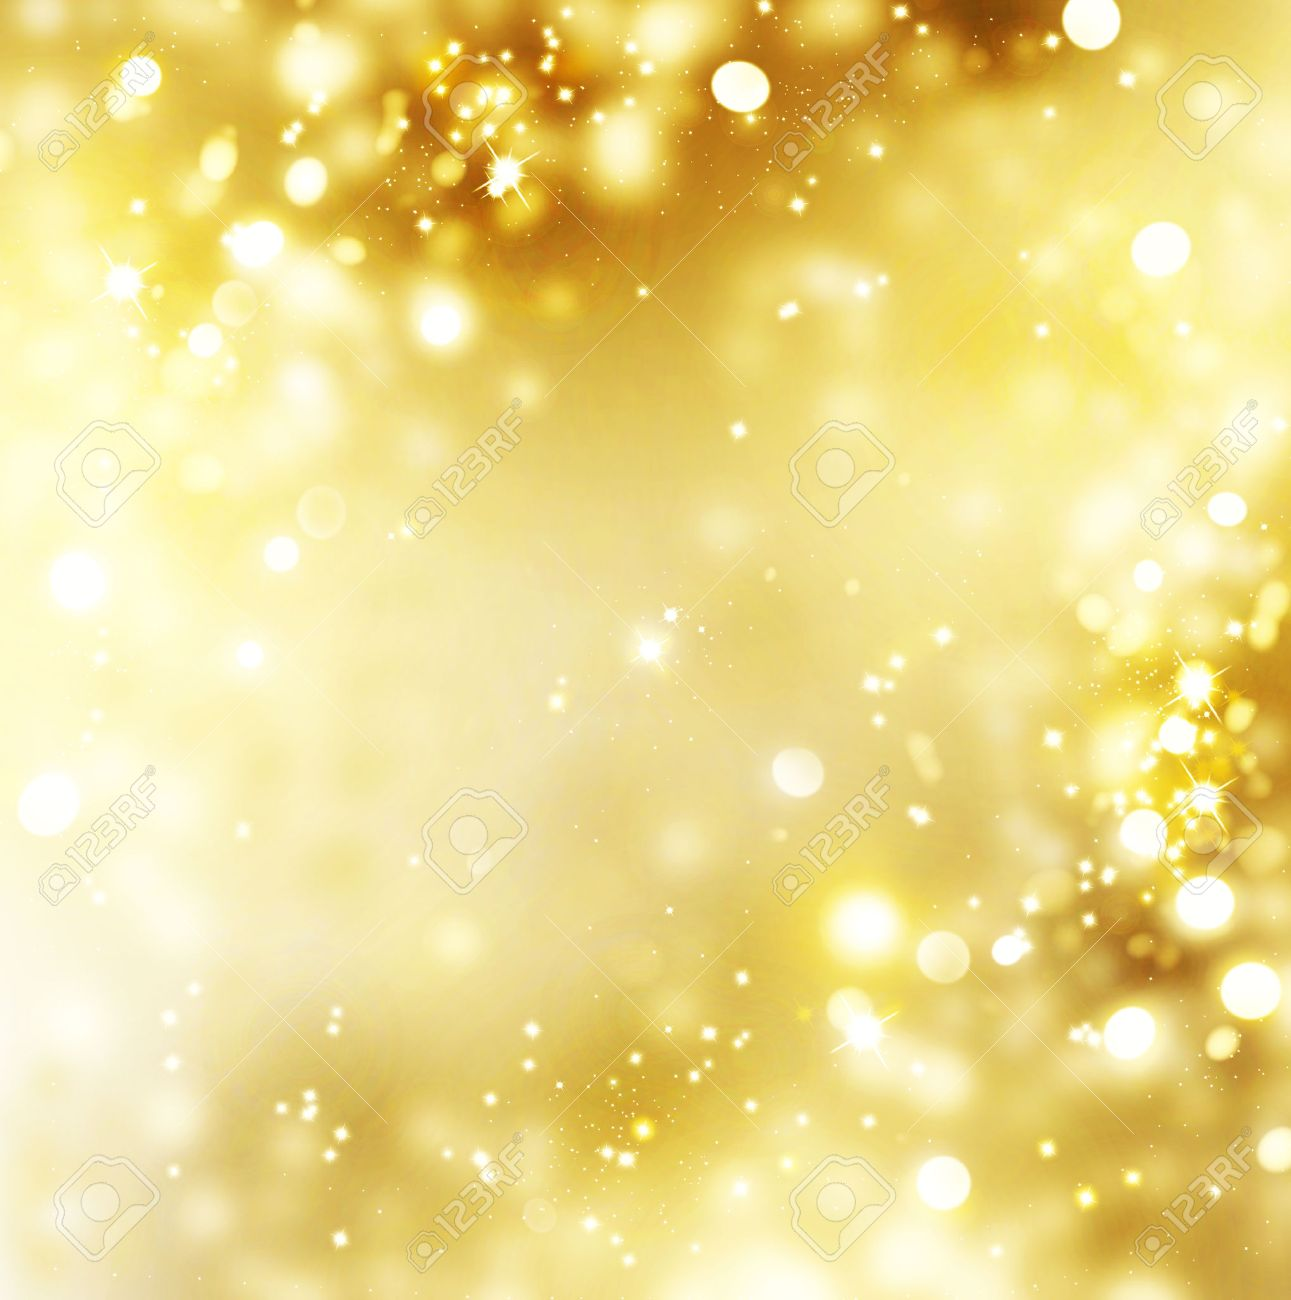 christmas gold background golden holiday glowing background stock